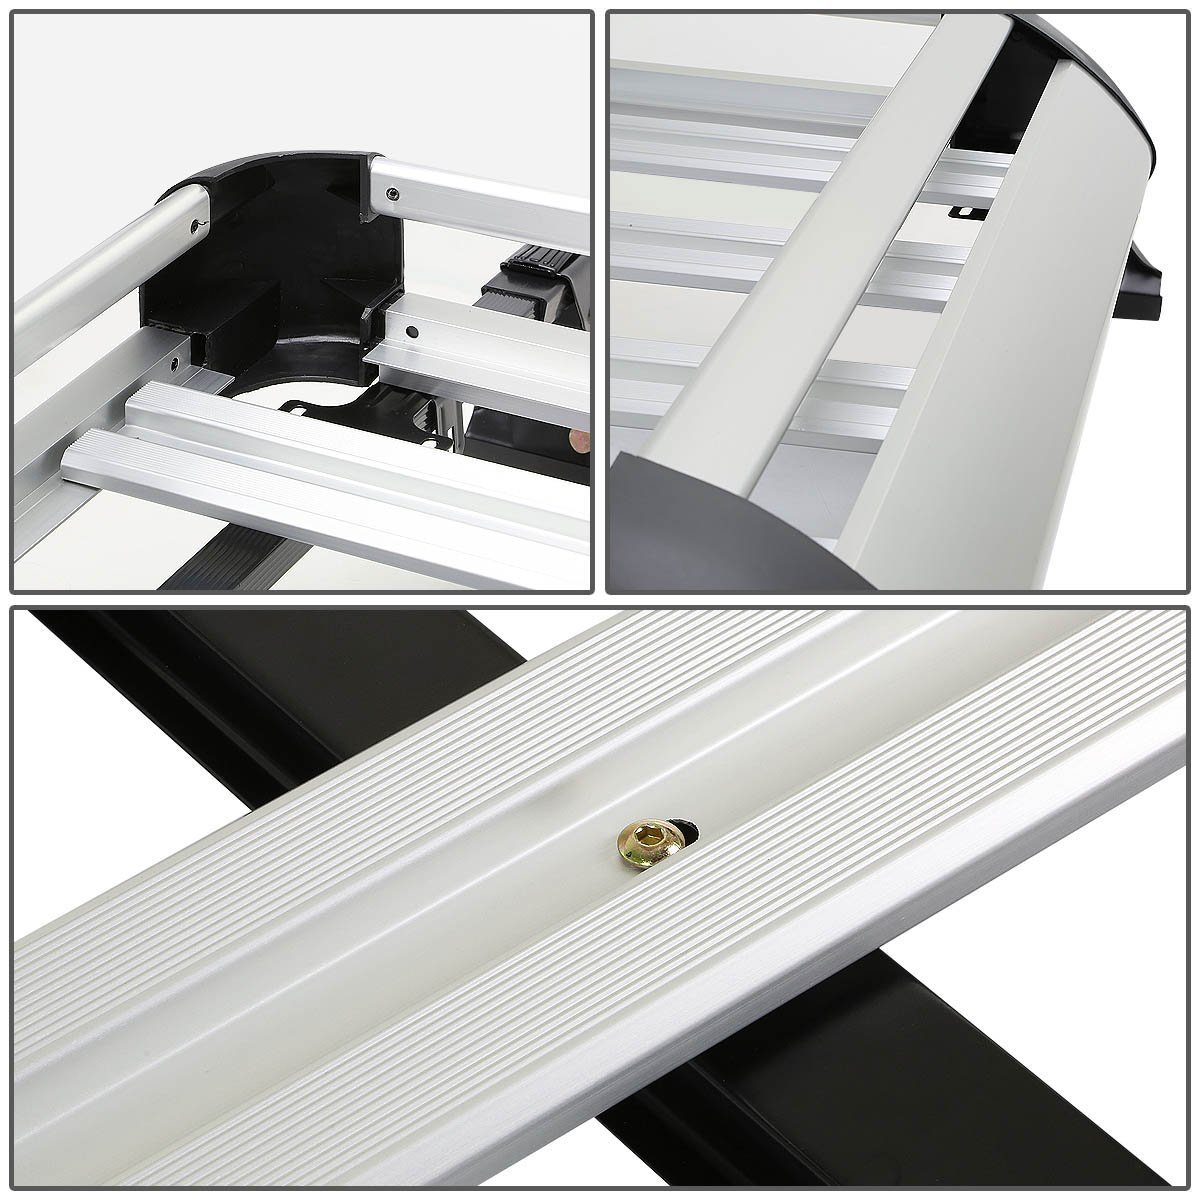 Exterior Accessories Silver 50 inches x 31 inch Aluminum Roof Rack ...